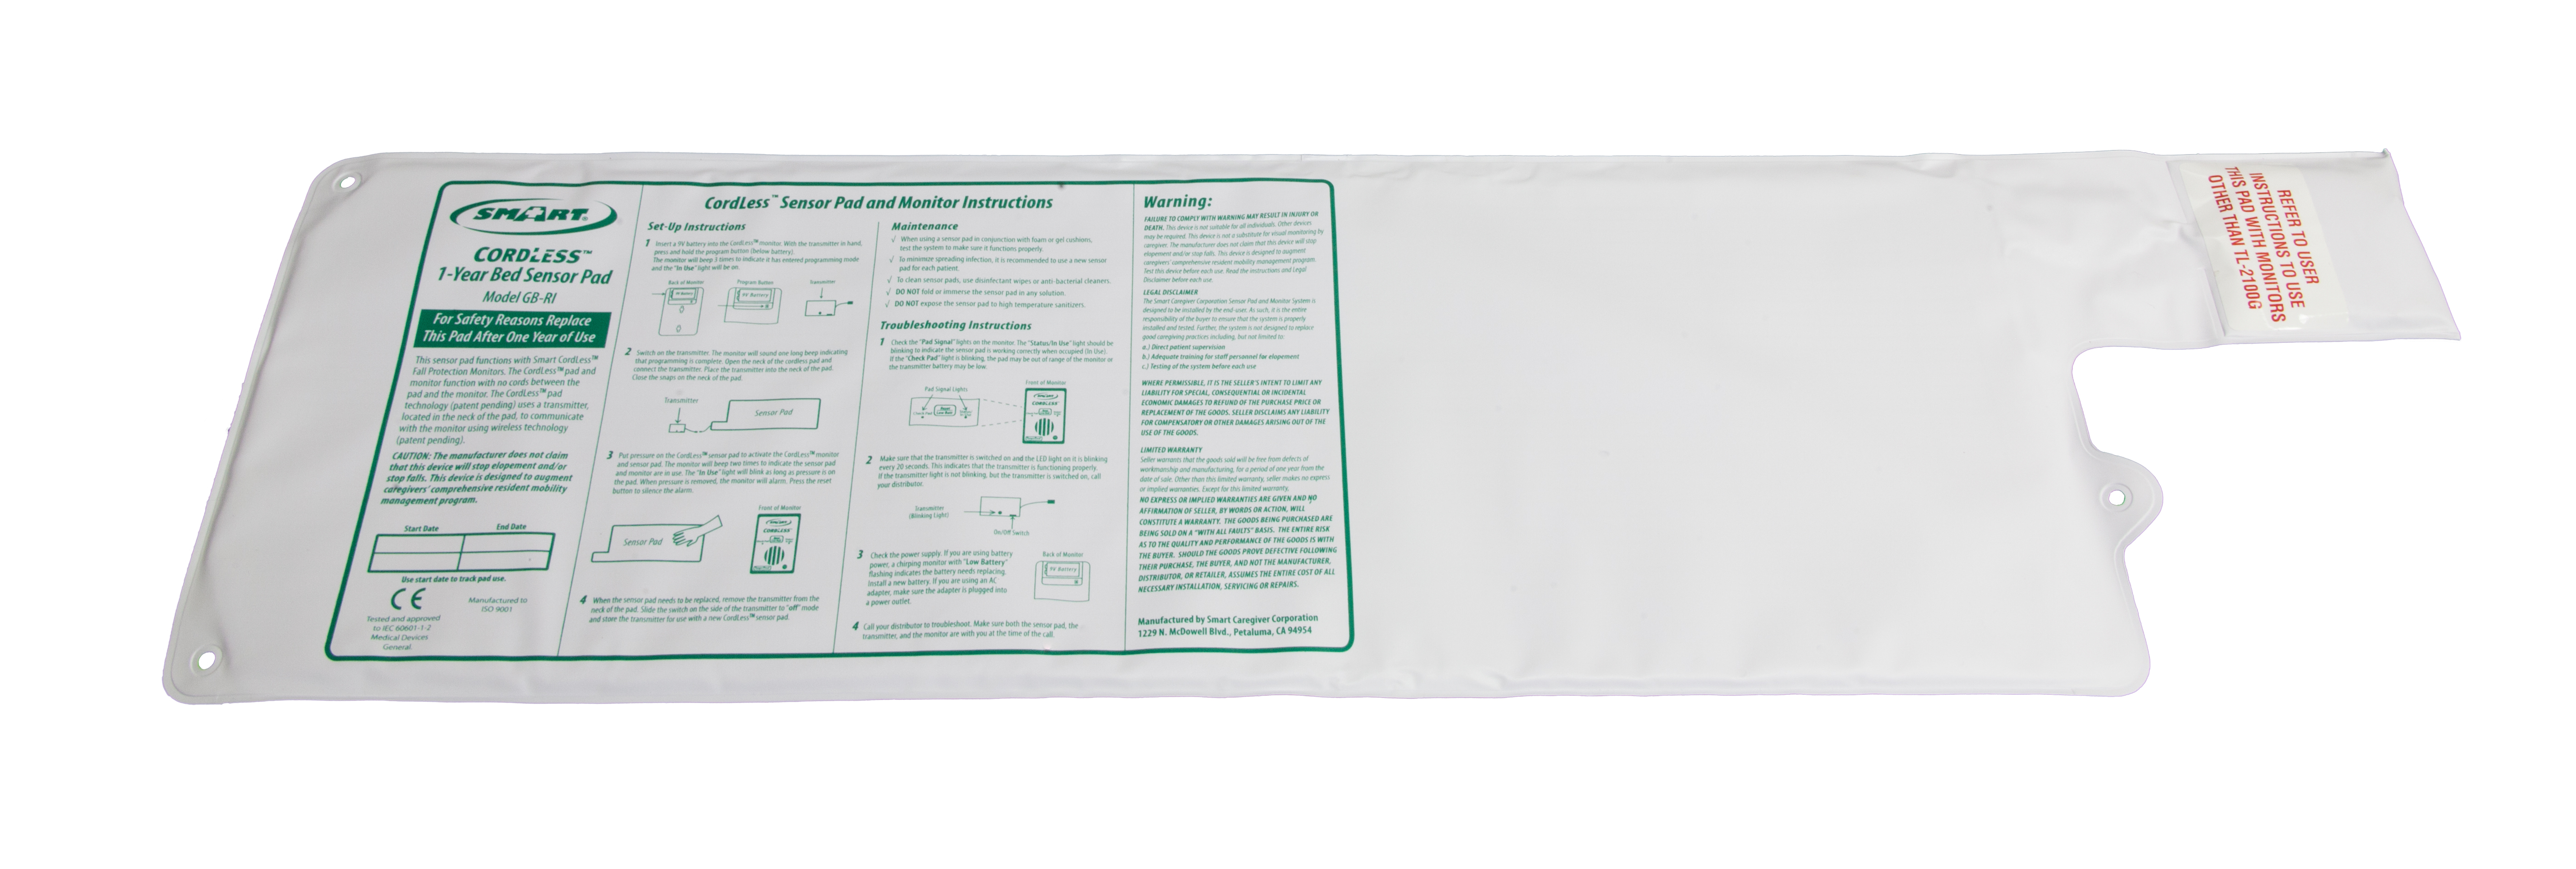 national-call-systems-gbt-90-cordless-bed-pad-10x30.jpg